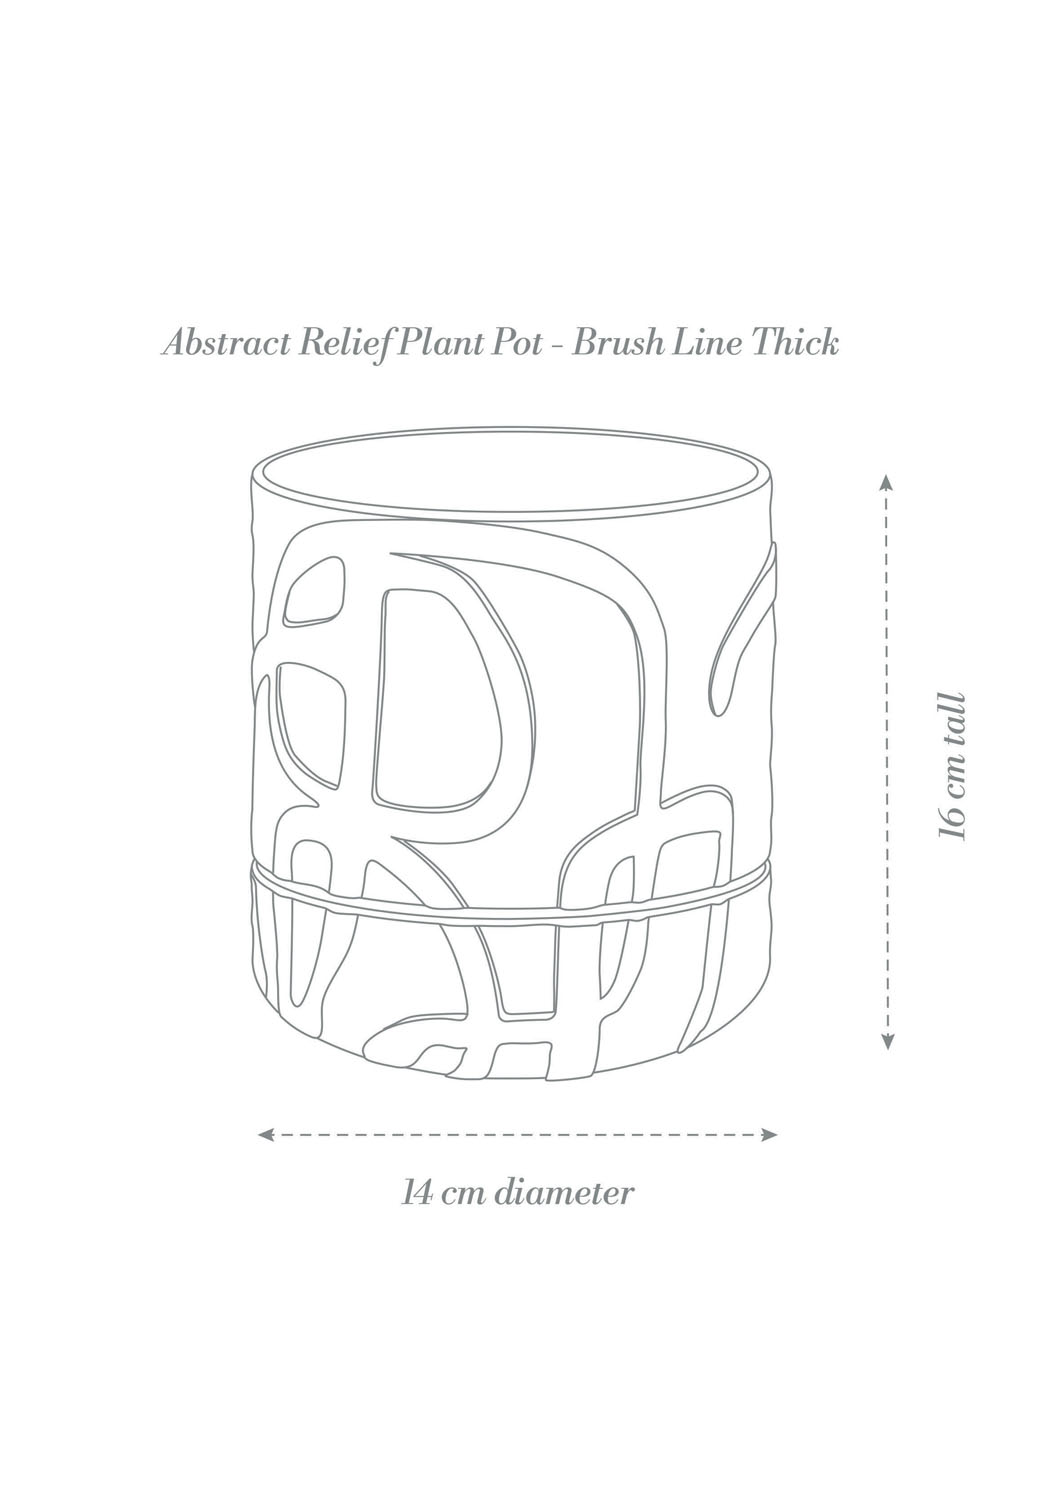 Abstract Relief Plant Pot - Brush Line Thick Product Diagram